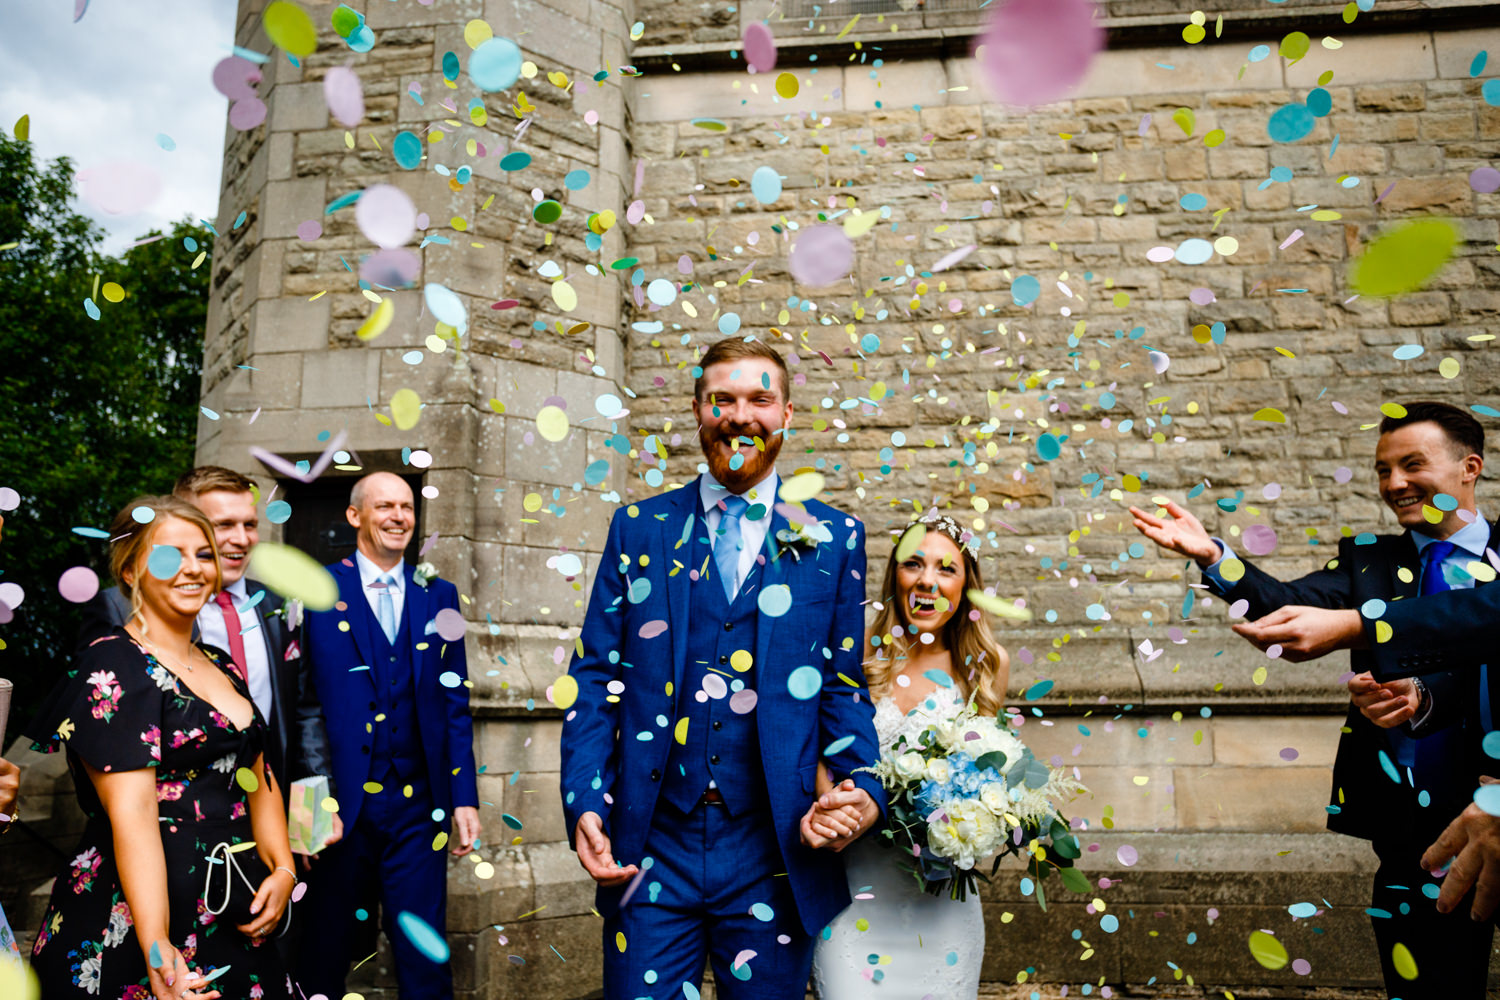 Intimate Wedding Photographer Manchester, Colourful confetti